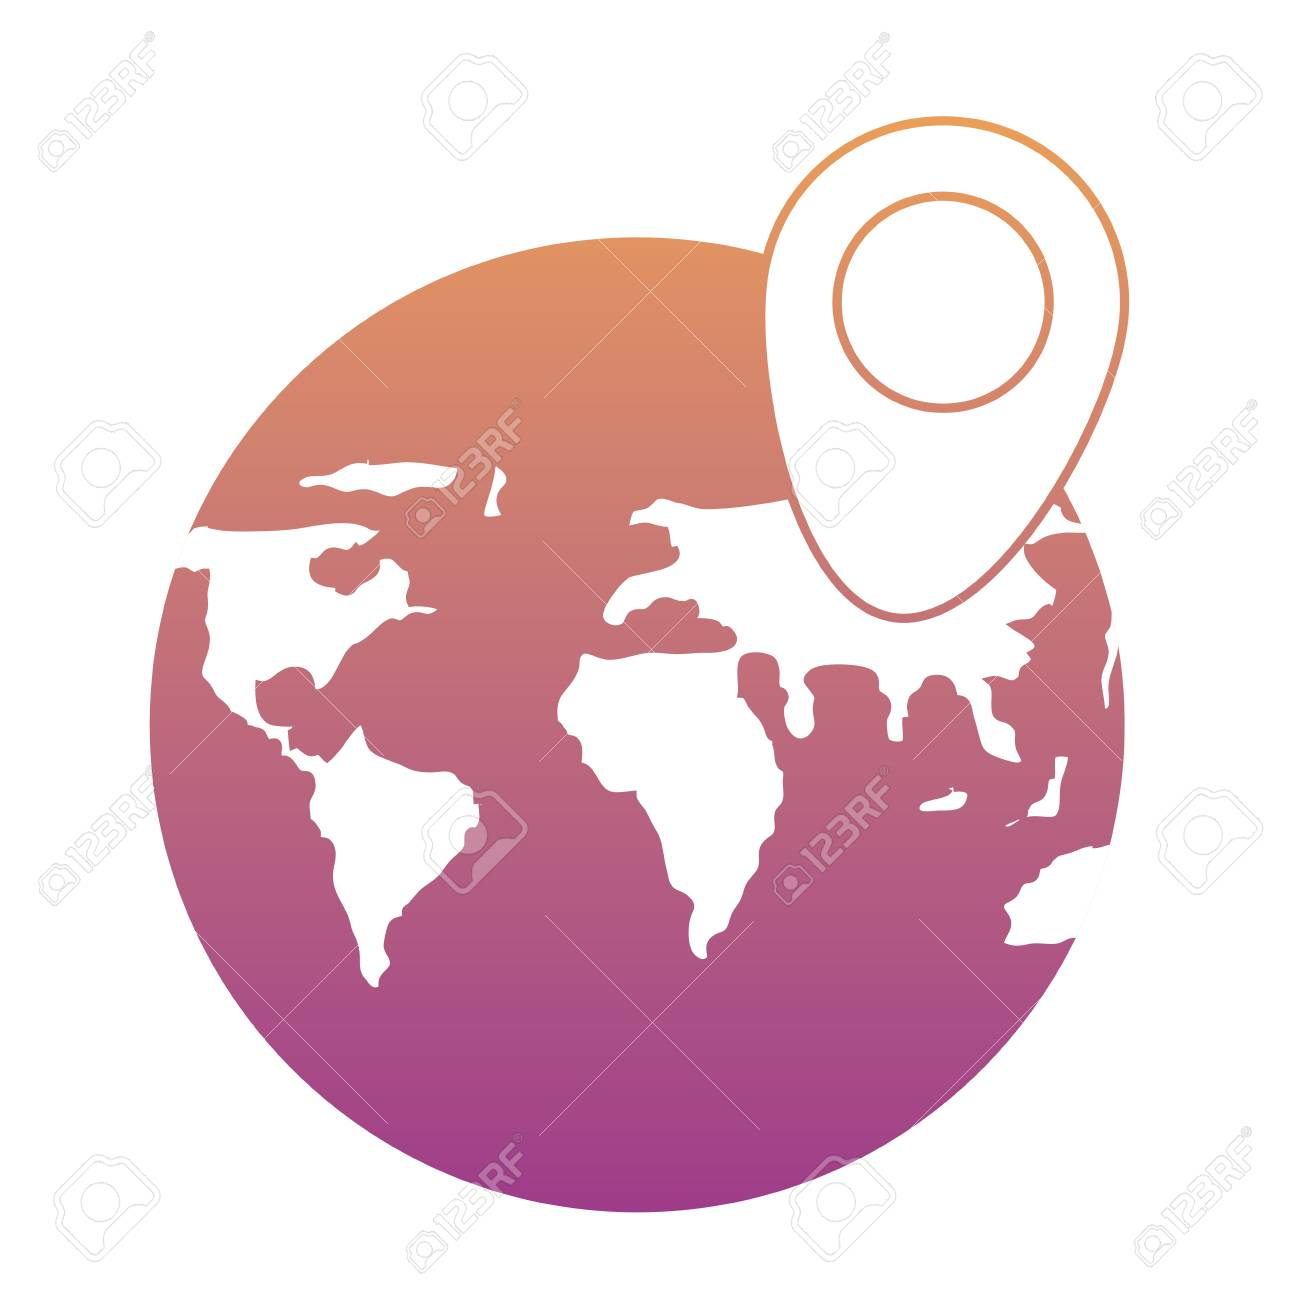 World map sphere with location pin icon over white background vector world map sphere with location pin icon over white background colorful design vector illustration gumiabroncs Choice Image